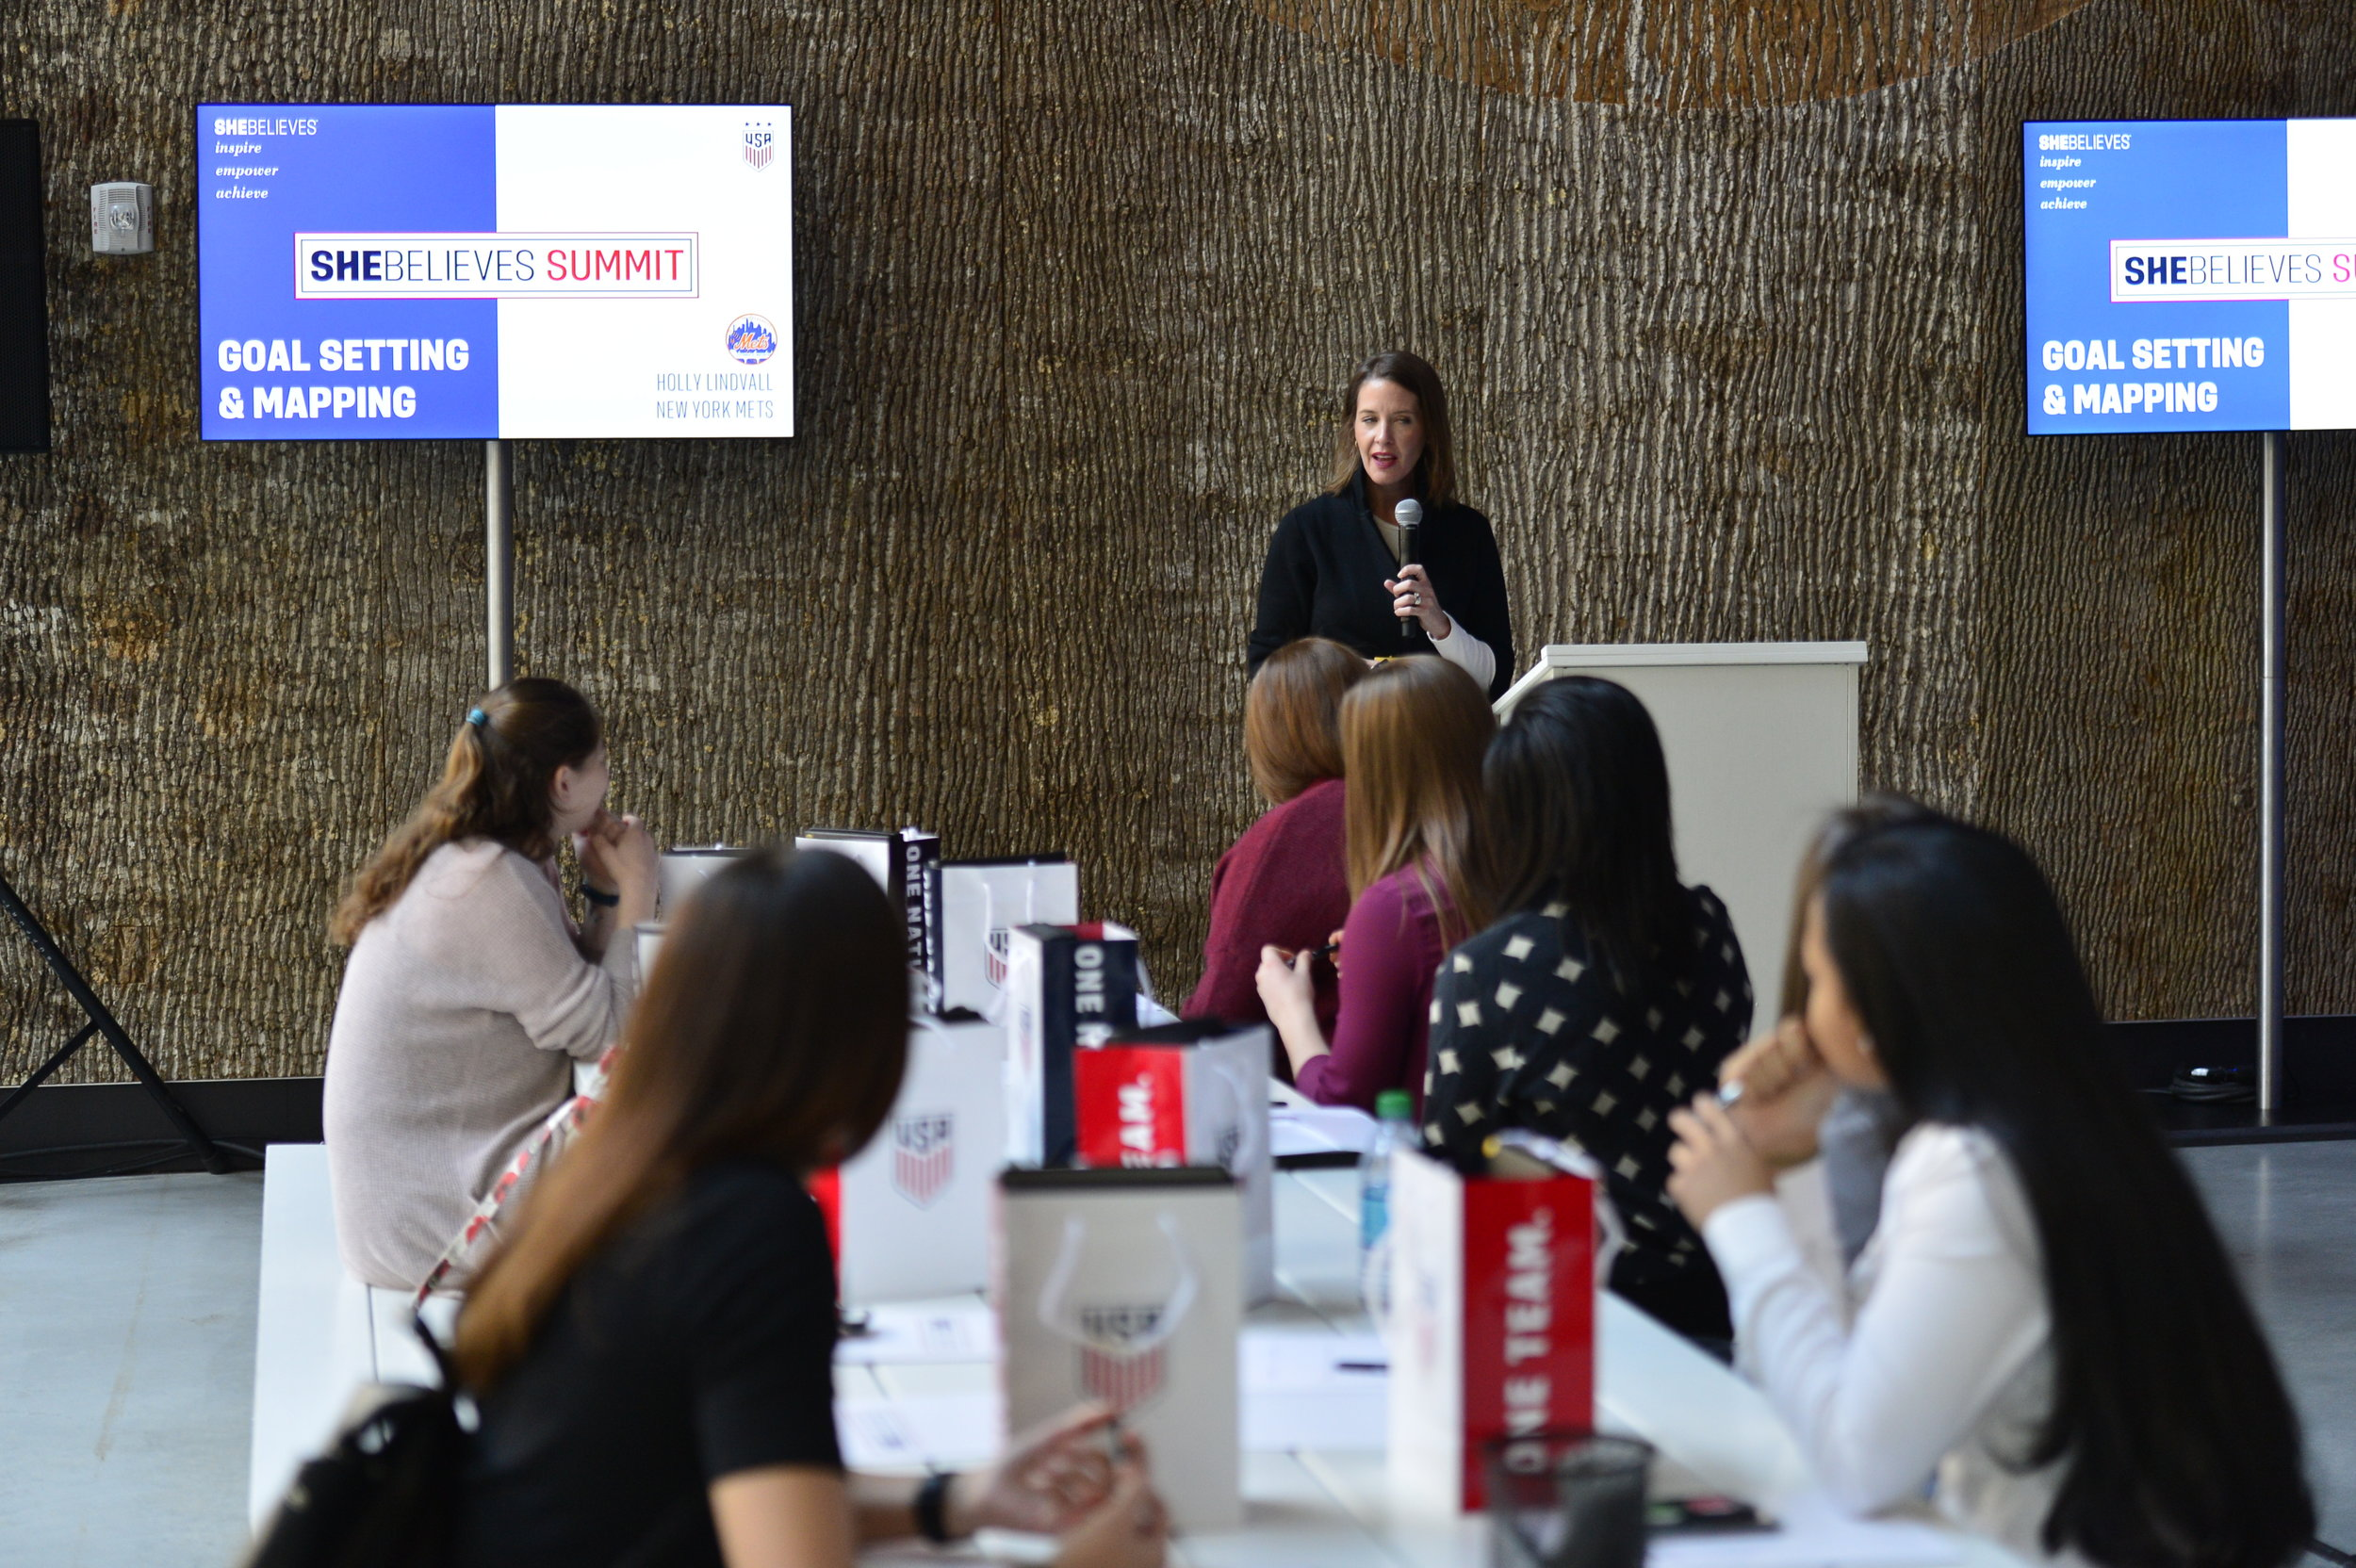 Holly Lindvall, VP of Human Resources and Diversity at NY Mets, speaks about goal setting and mapping in the SheBelieves in Her Abilities breakout session.